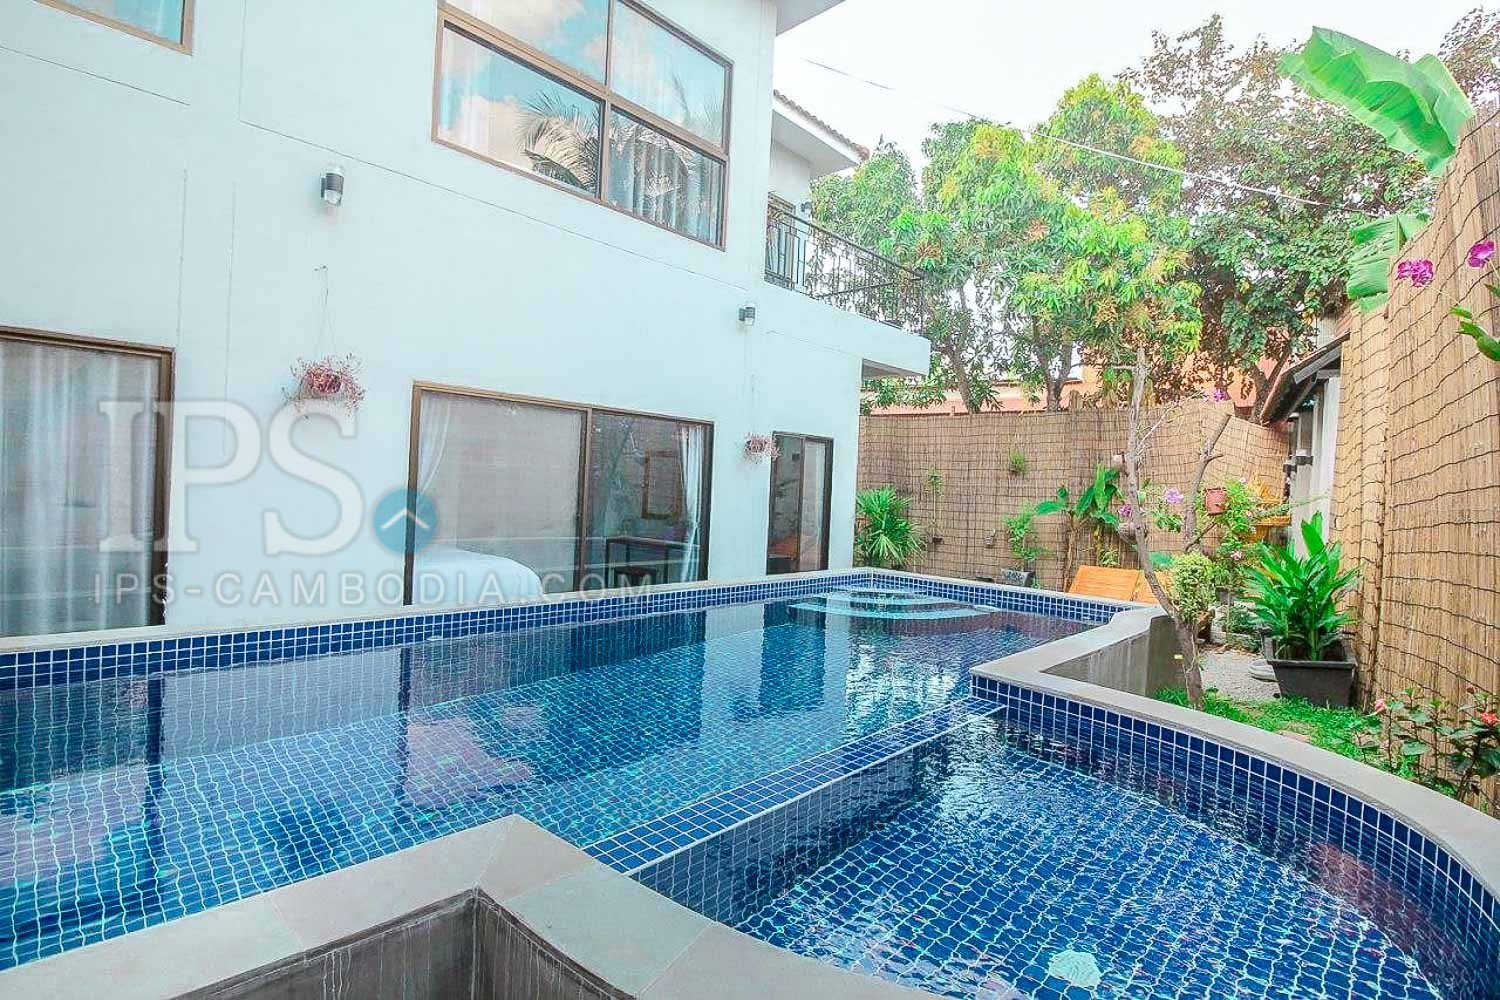 7 Bedroom Villa  For Sale - Svay Dangkum, Siem Reap